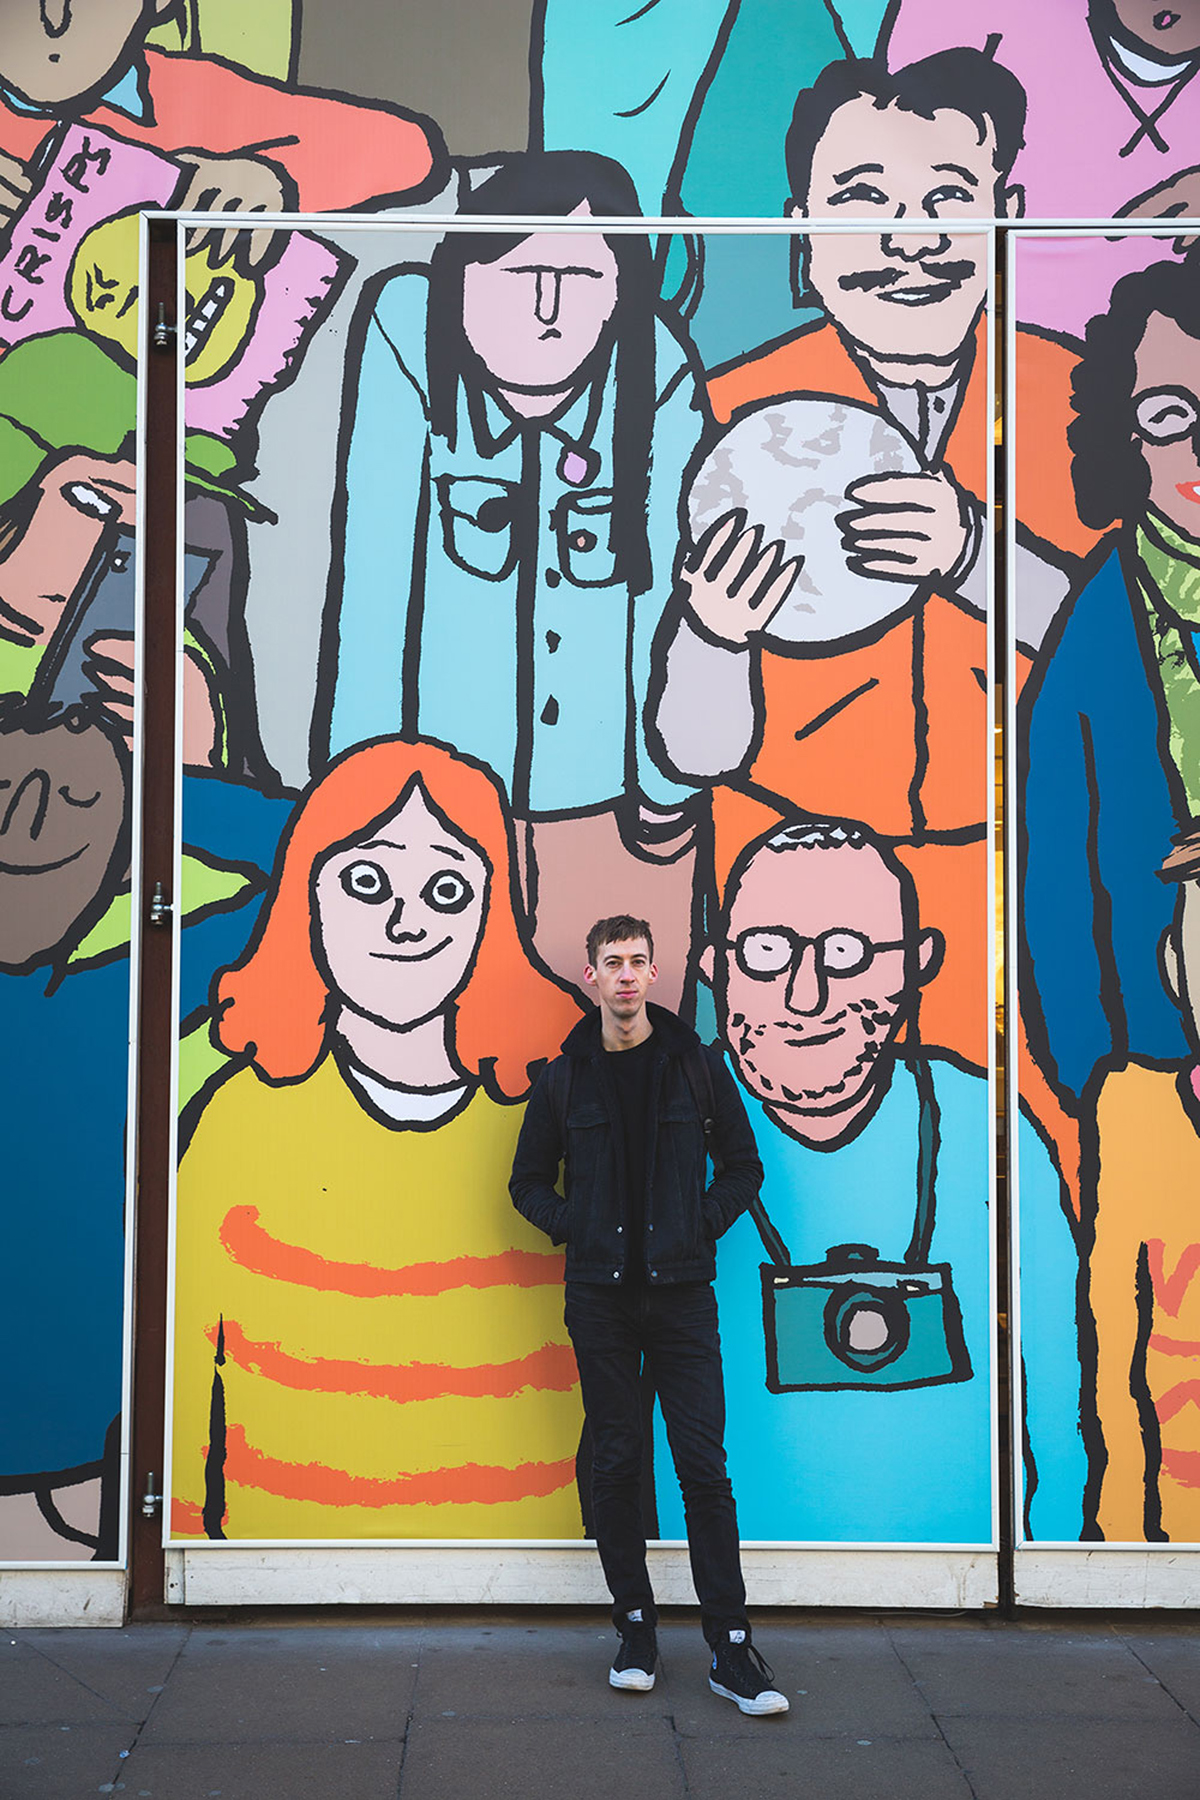 Photographs of Jean Jullien and his hoarding for Uniqlo, shot by Tom Robinson